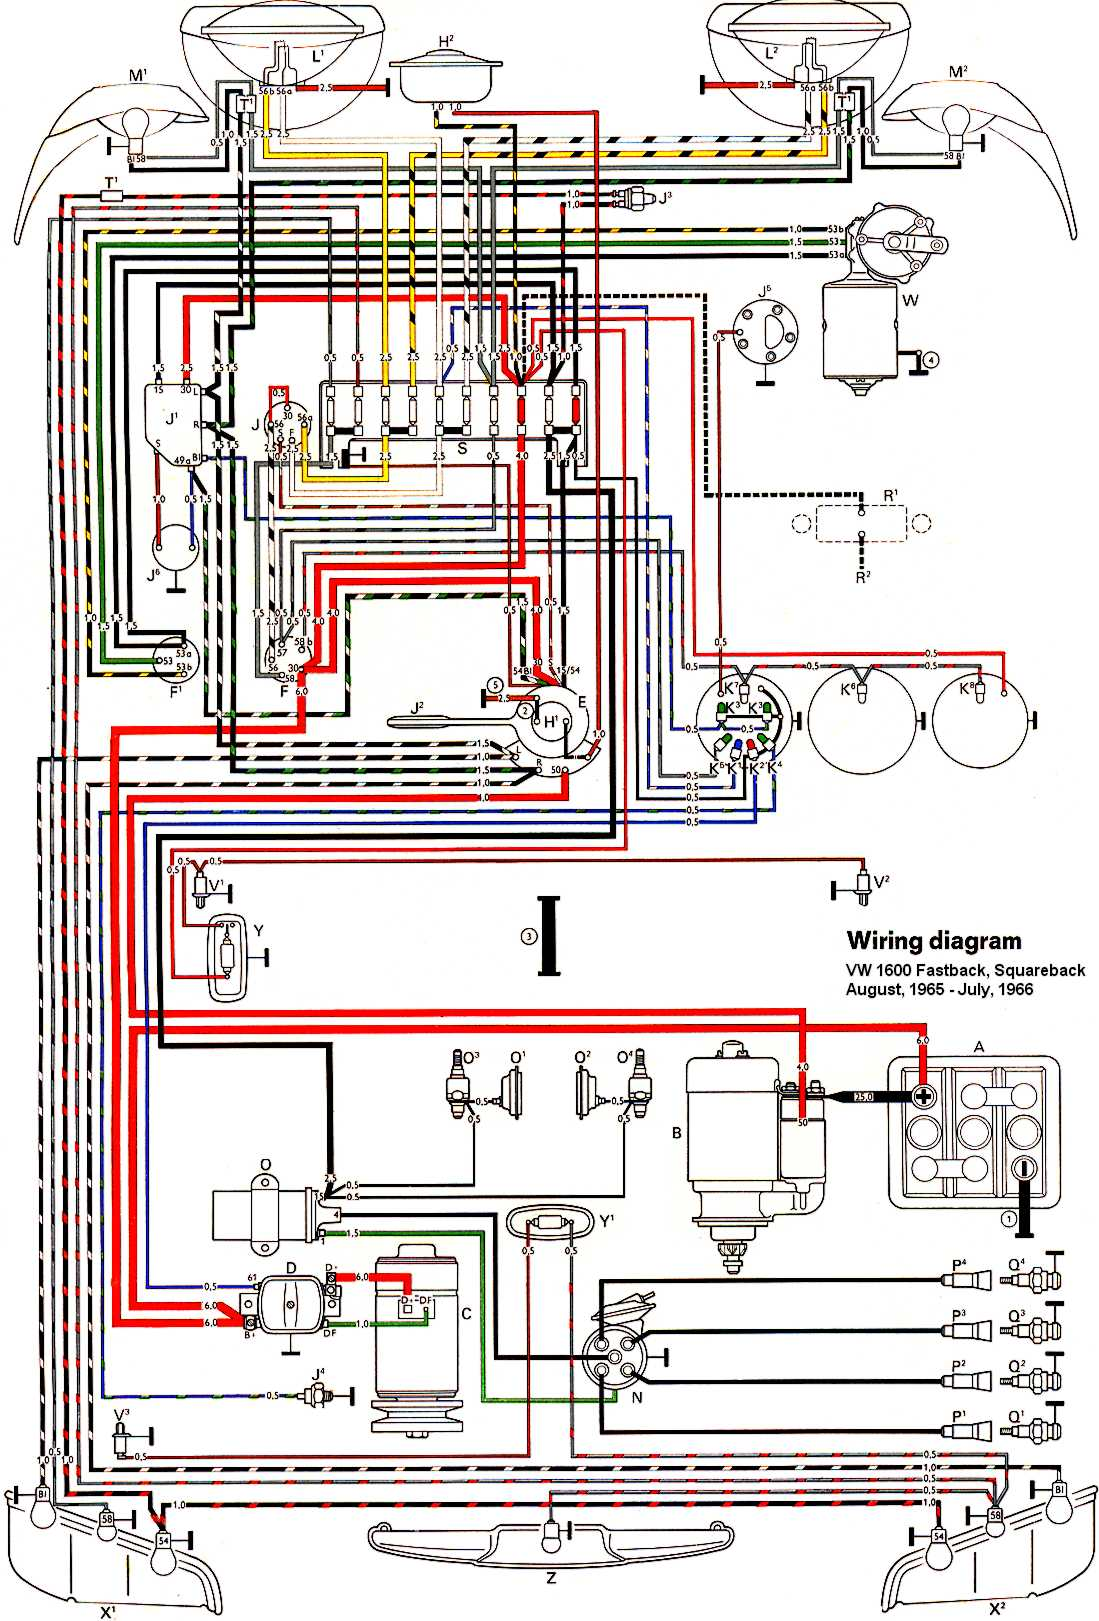 type3_1600_66 thesamba com type 3 wiring diagrams 1965 vw beetle wiring diagram at nearapp.co